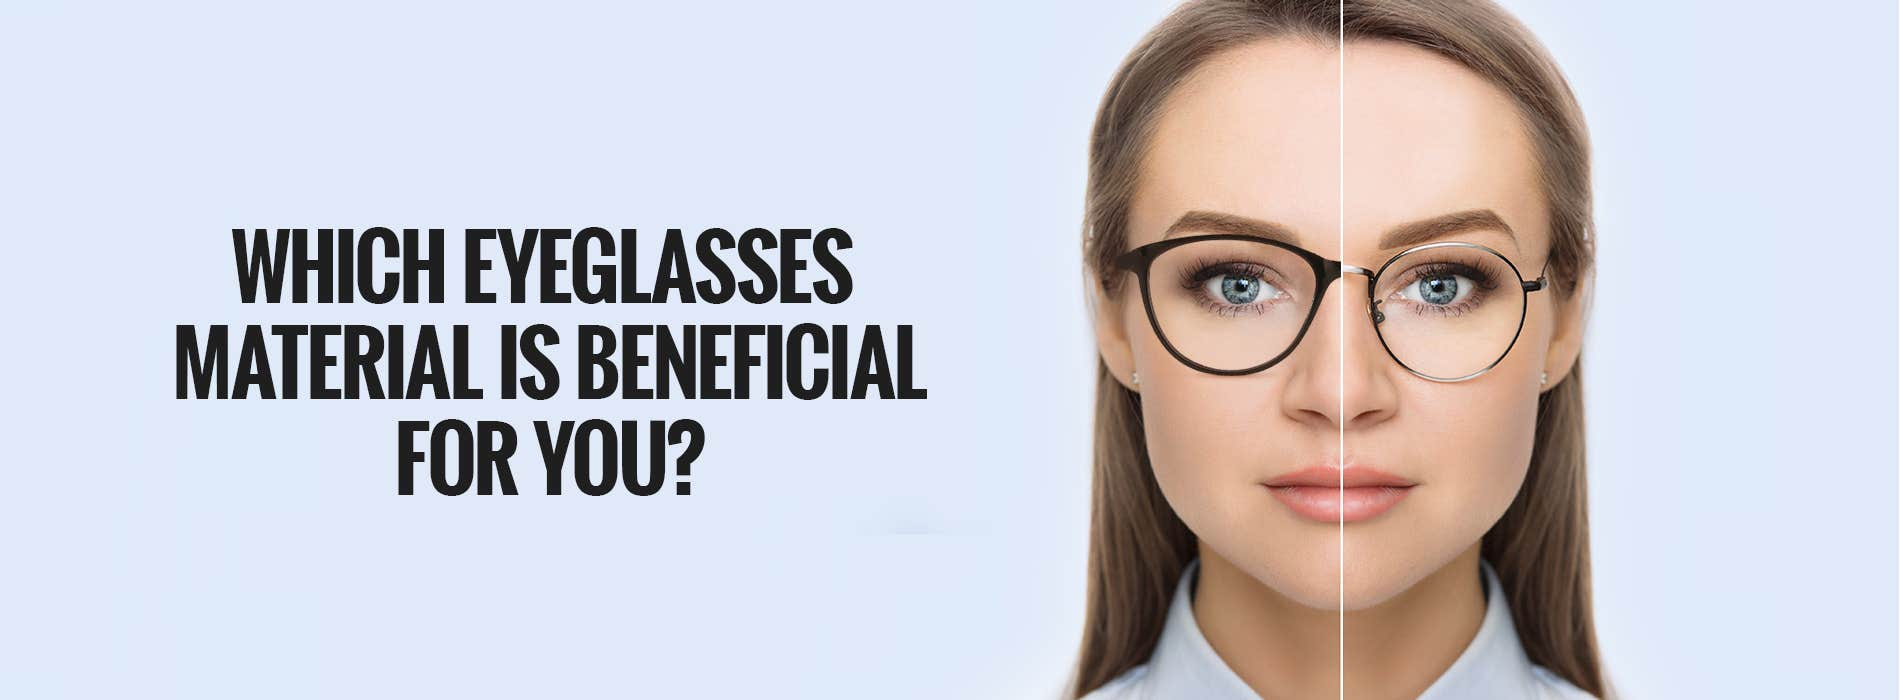 Which Eyeglasses Material Is Beneficial For You?